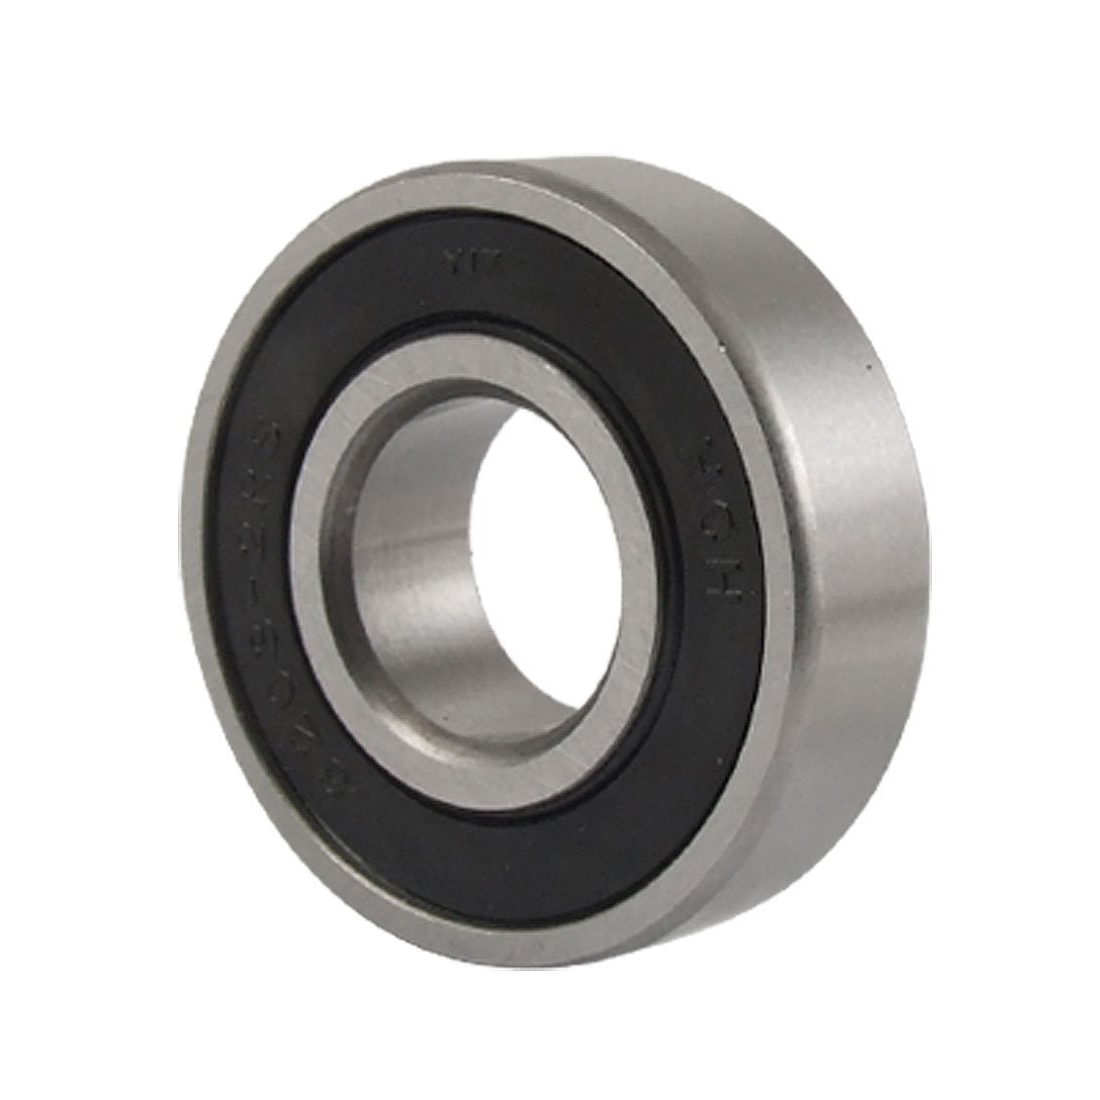 KSOL 17x40x12mm 6203-2RS Double Side Sealed Ball Bearing